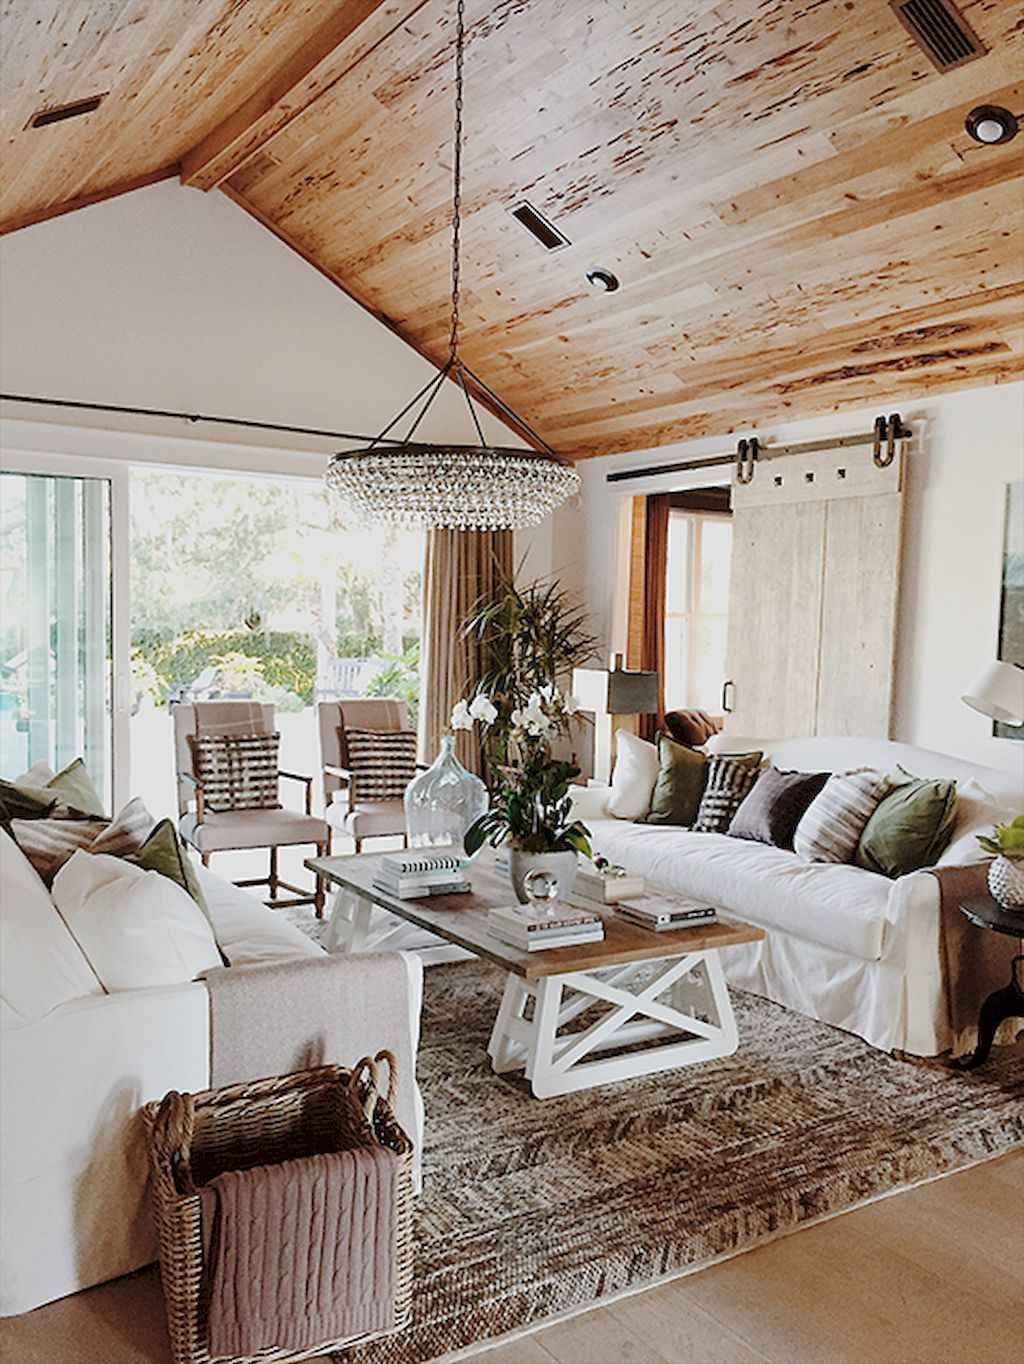 images of modern farmhouse living rooms the best room 60 cool decor ideas 44 roomadness com 1024 1364 in